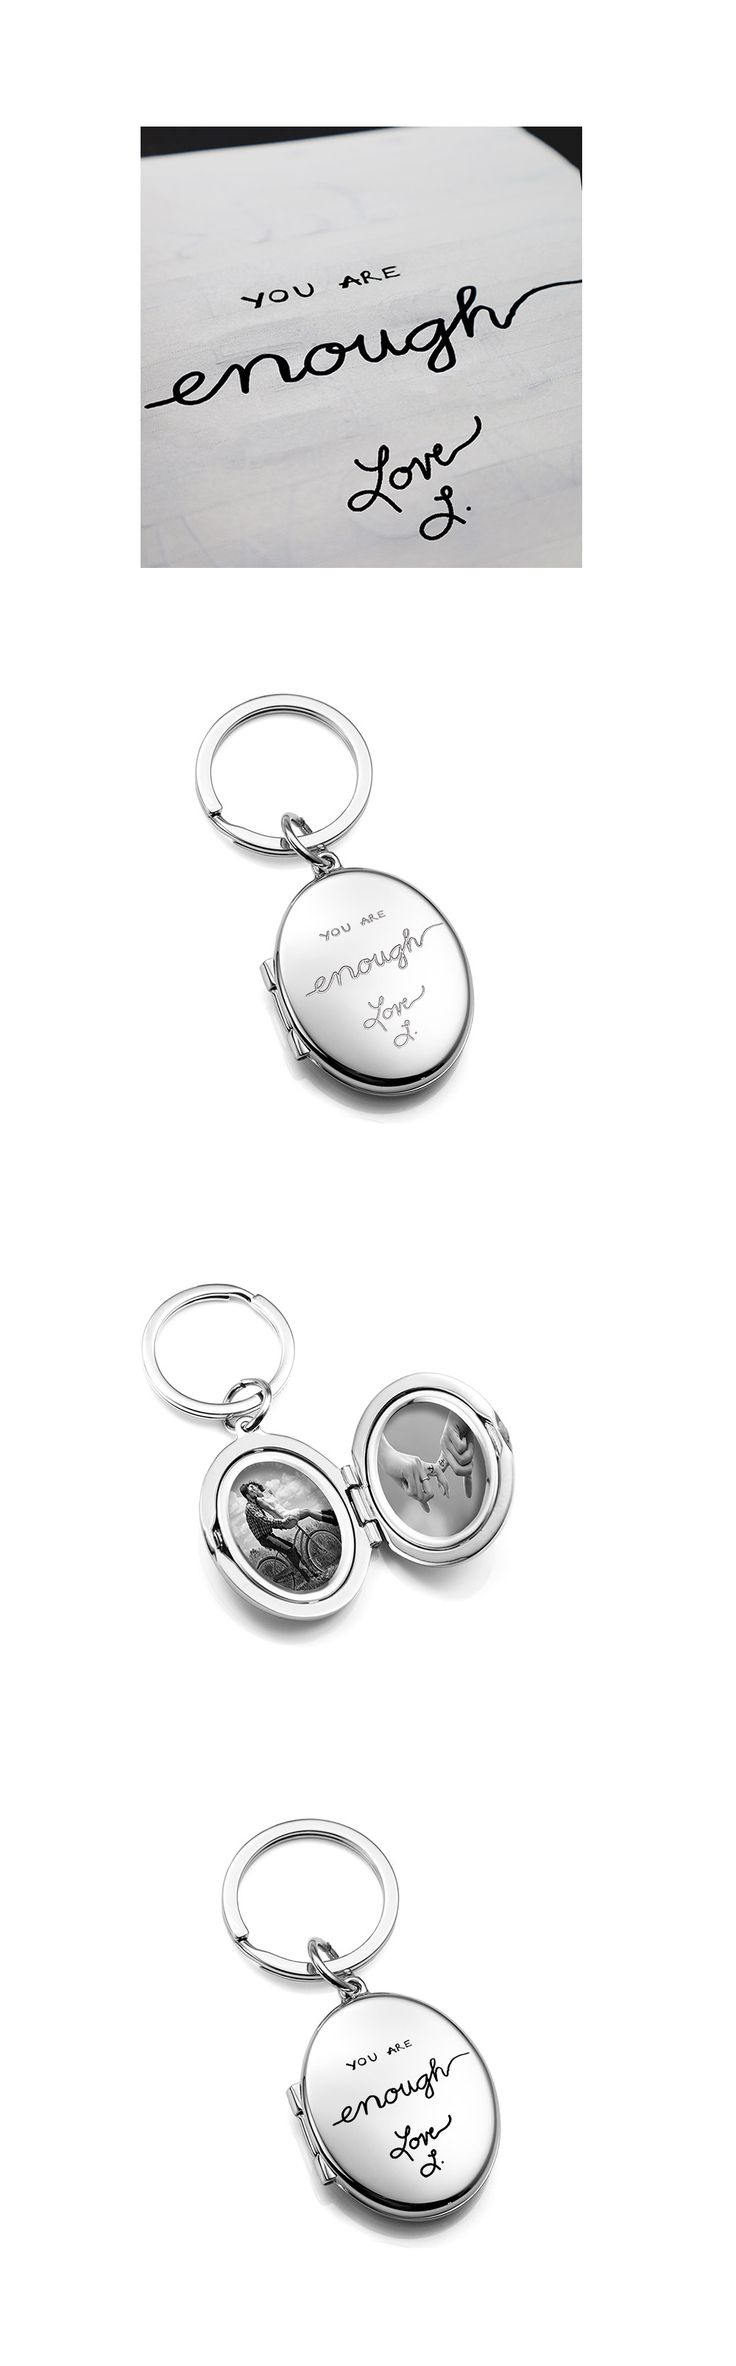 lockets keychain necklace ztyleco plain set photo locket round products silver